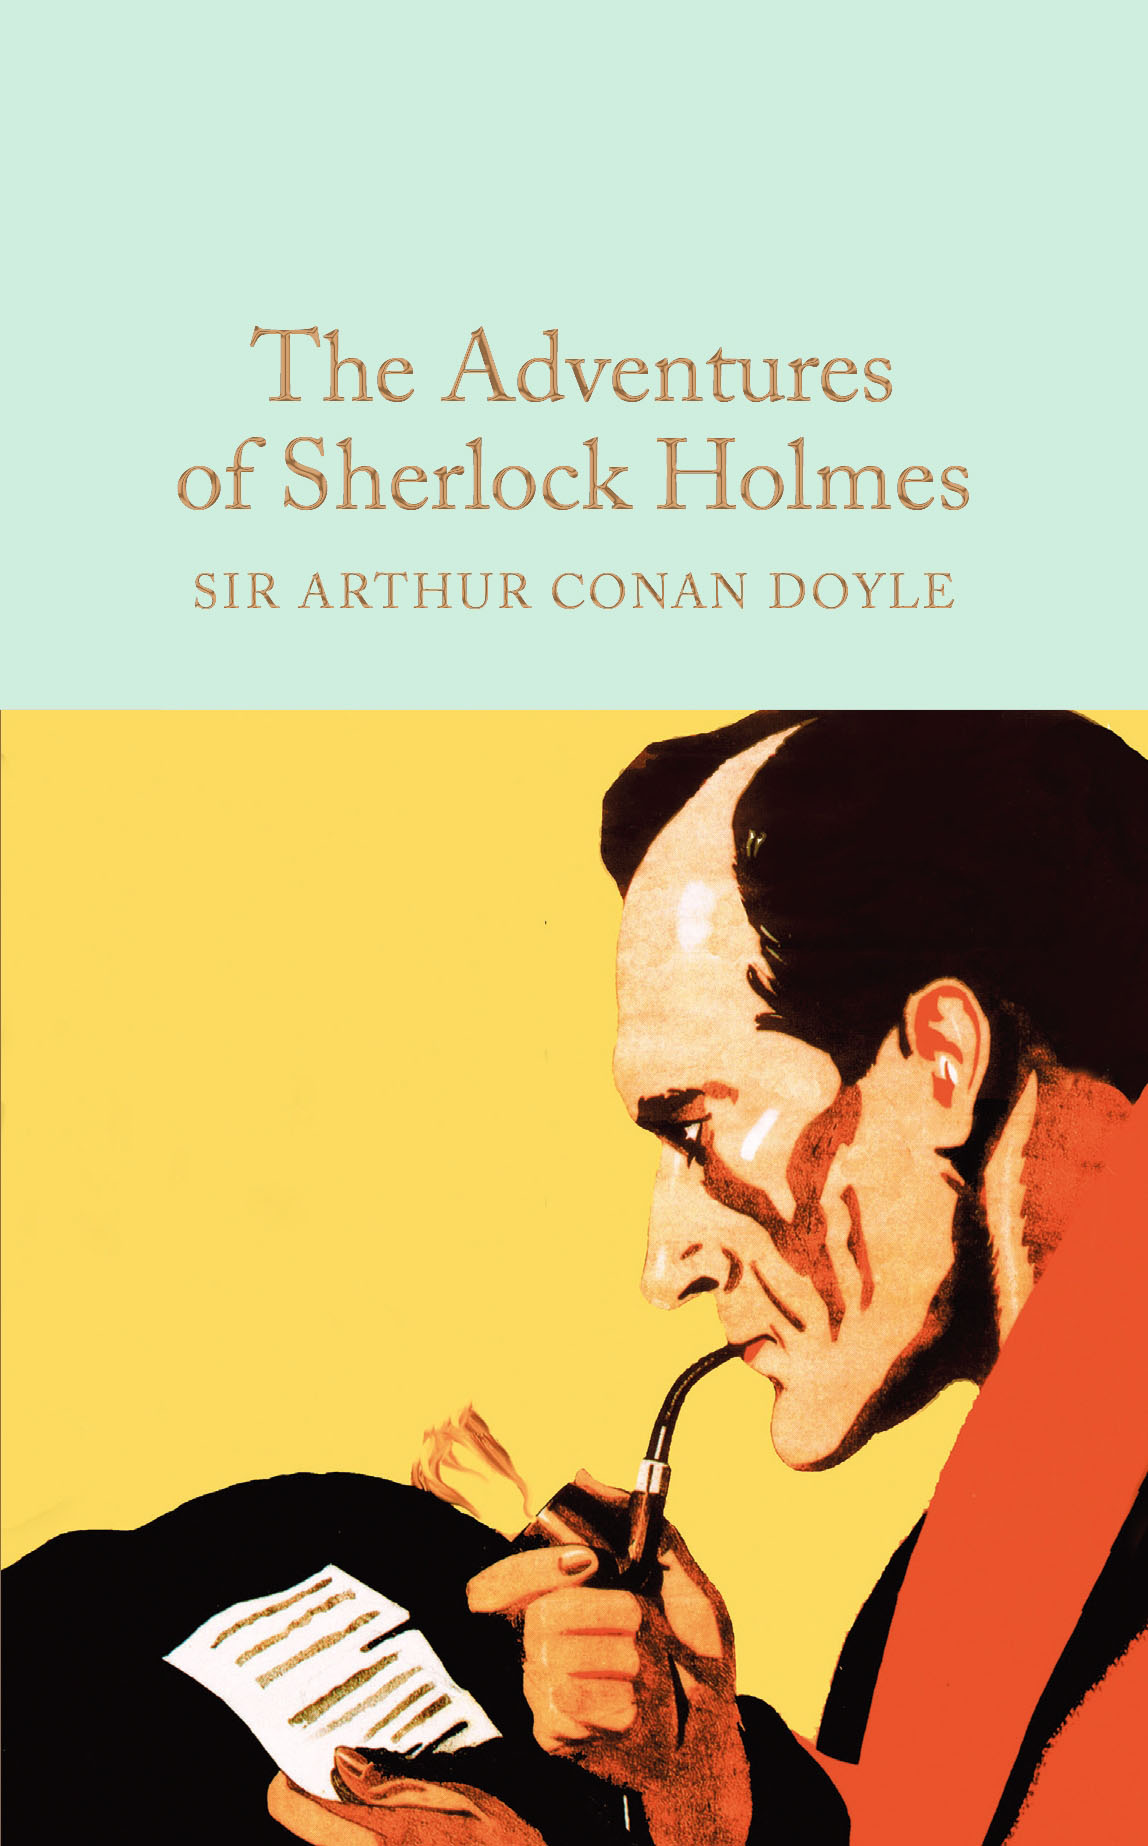 The Adventures of Sherlock Holmes greatest adventures of sherlock holmes